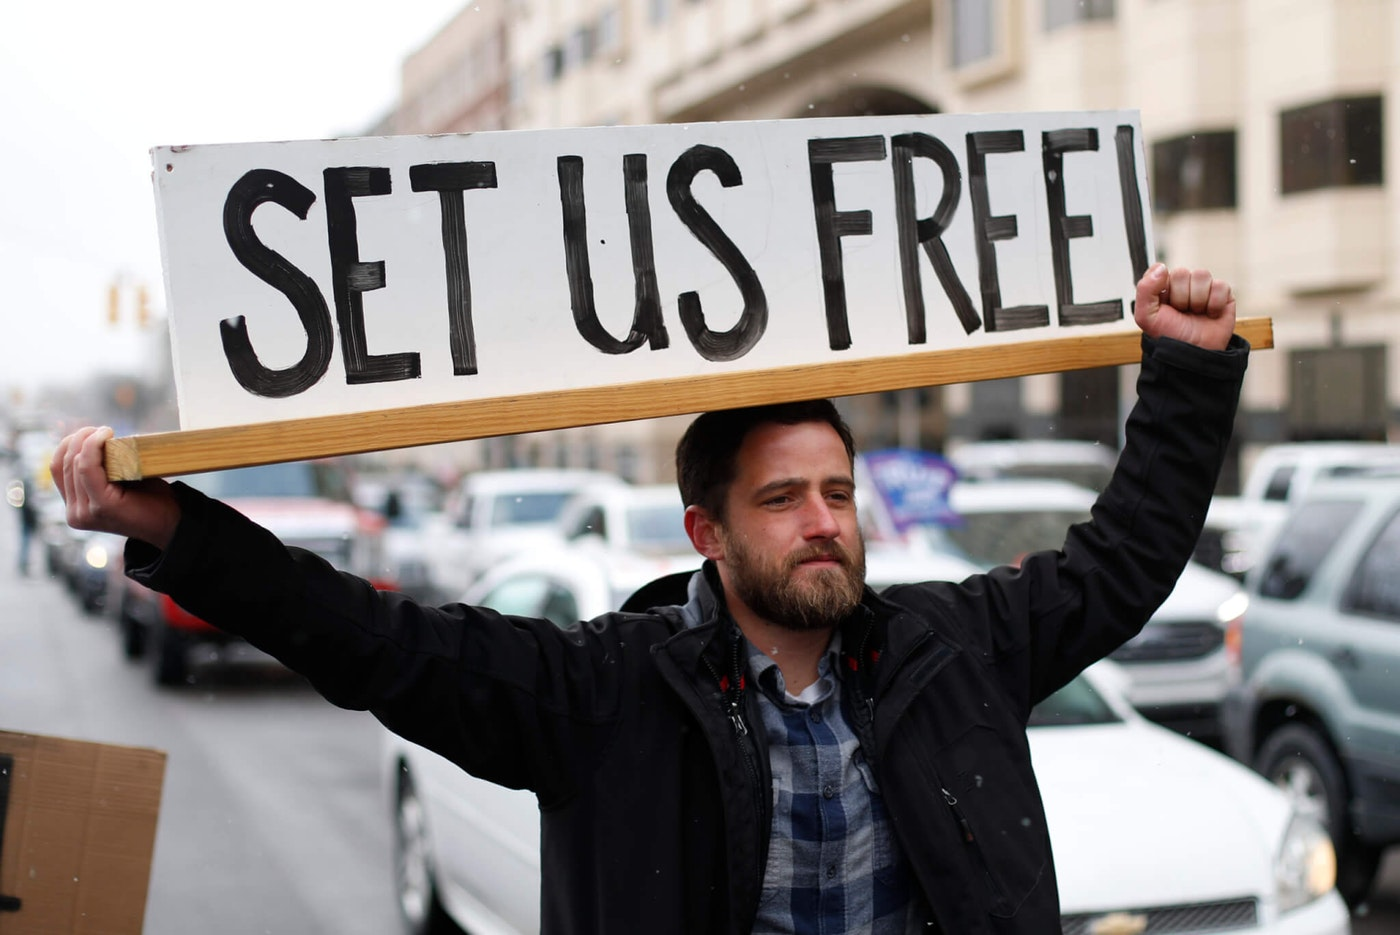 Steve Polet holds a sign during a protest at the State Capitol in Lansing, Mich., Wednesday, April 15, 2020. Flag-waving, honking protesters drove past the Michigan Capitol on Wednesday to show their displeasure with Michigan Gov. Gretchen Whitmer's orders to keep people at home and businesses locked during the new coronavirus COVID-19 outbreak. (AP Photo/Paul Sancya)